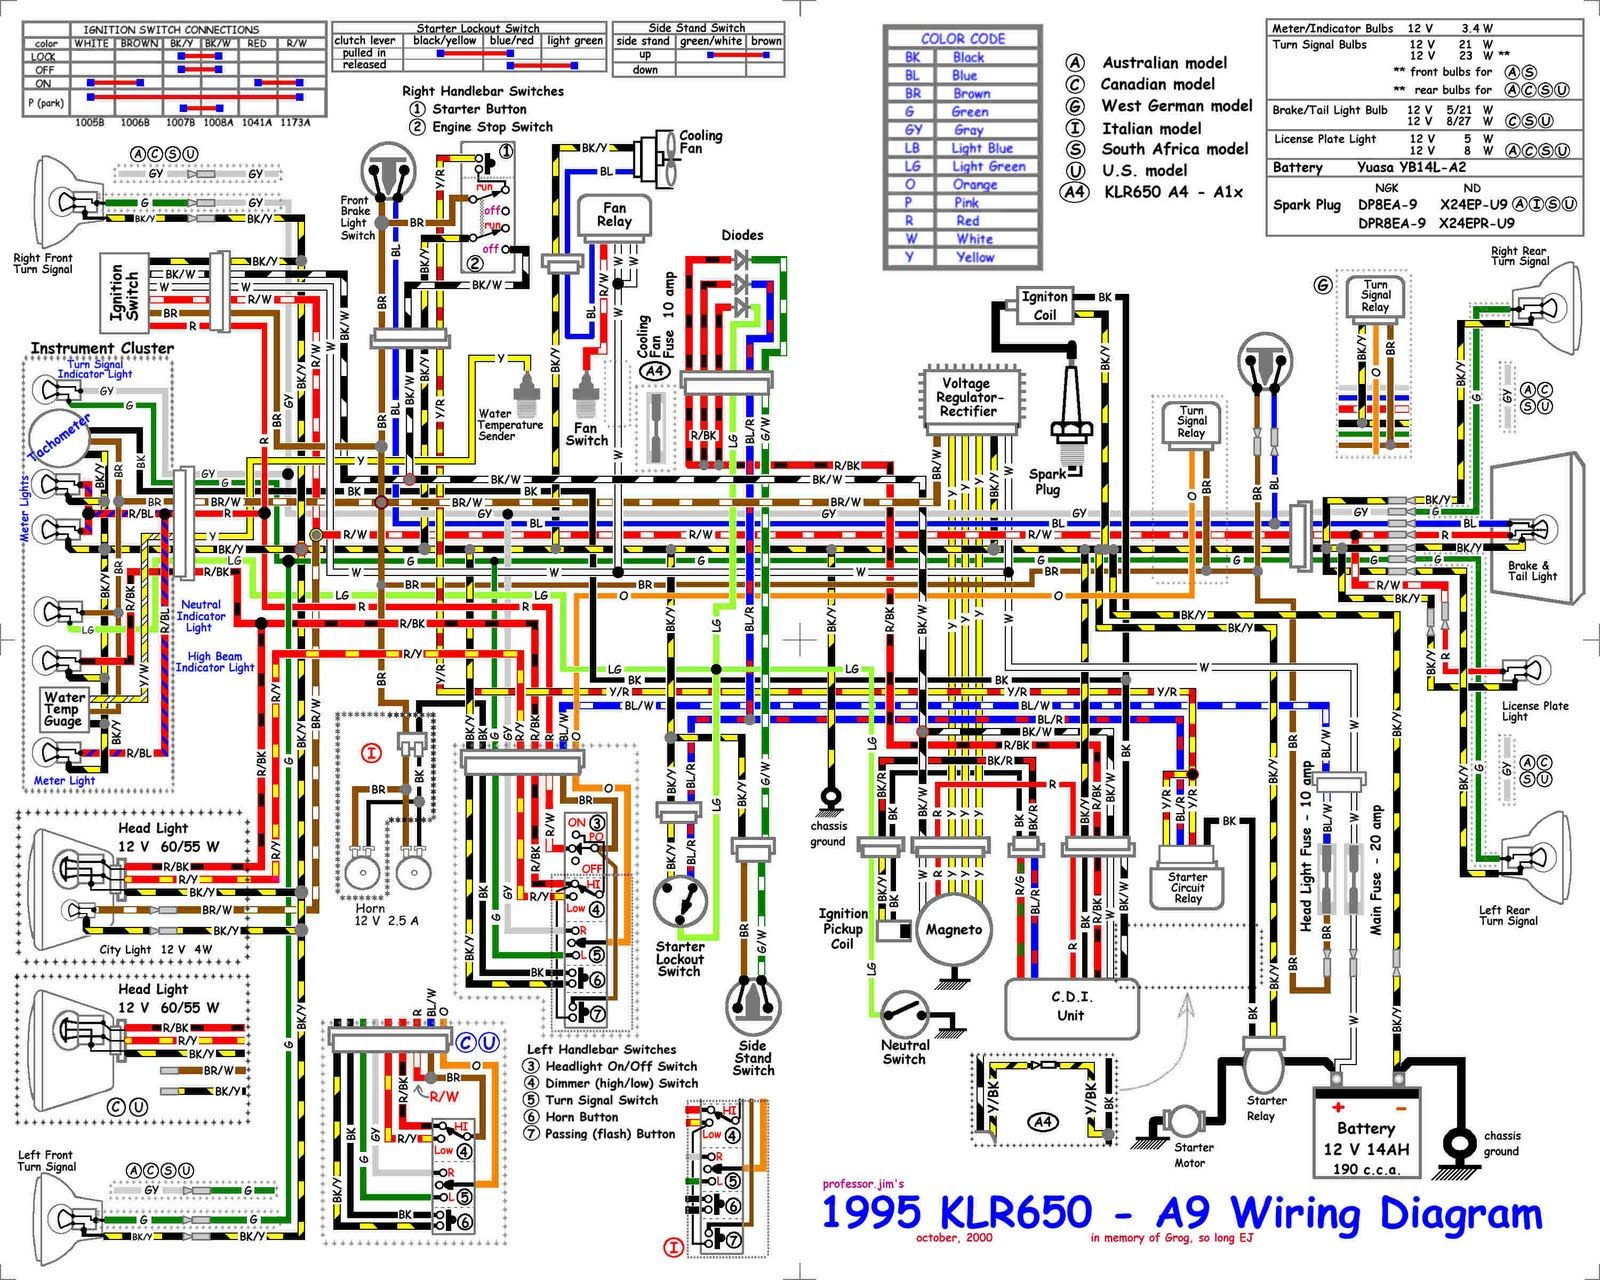 1974 monte carlo wiring diagram wiring diagrams clickspin by larry hurt on cool cars klr 650, electrical diagram 1987 monte carlo wiring diagram 1974 monte carlo wiring diagram